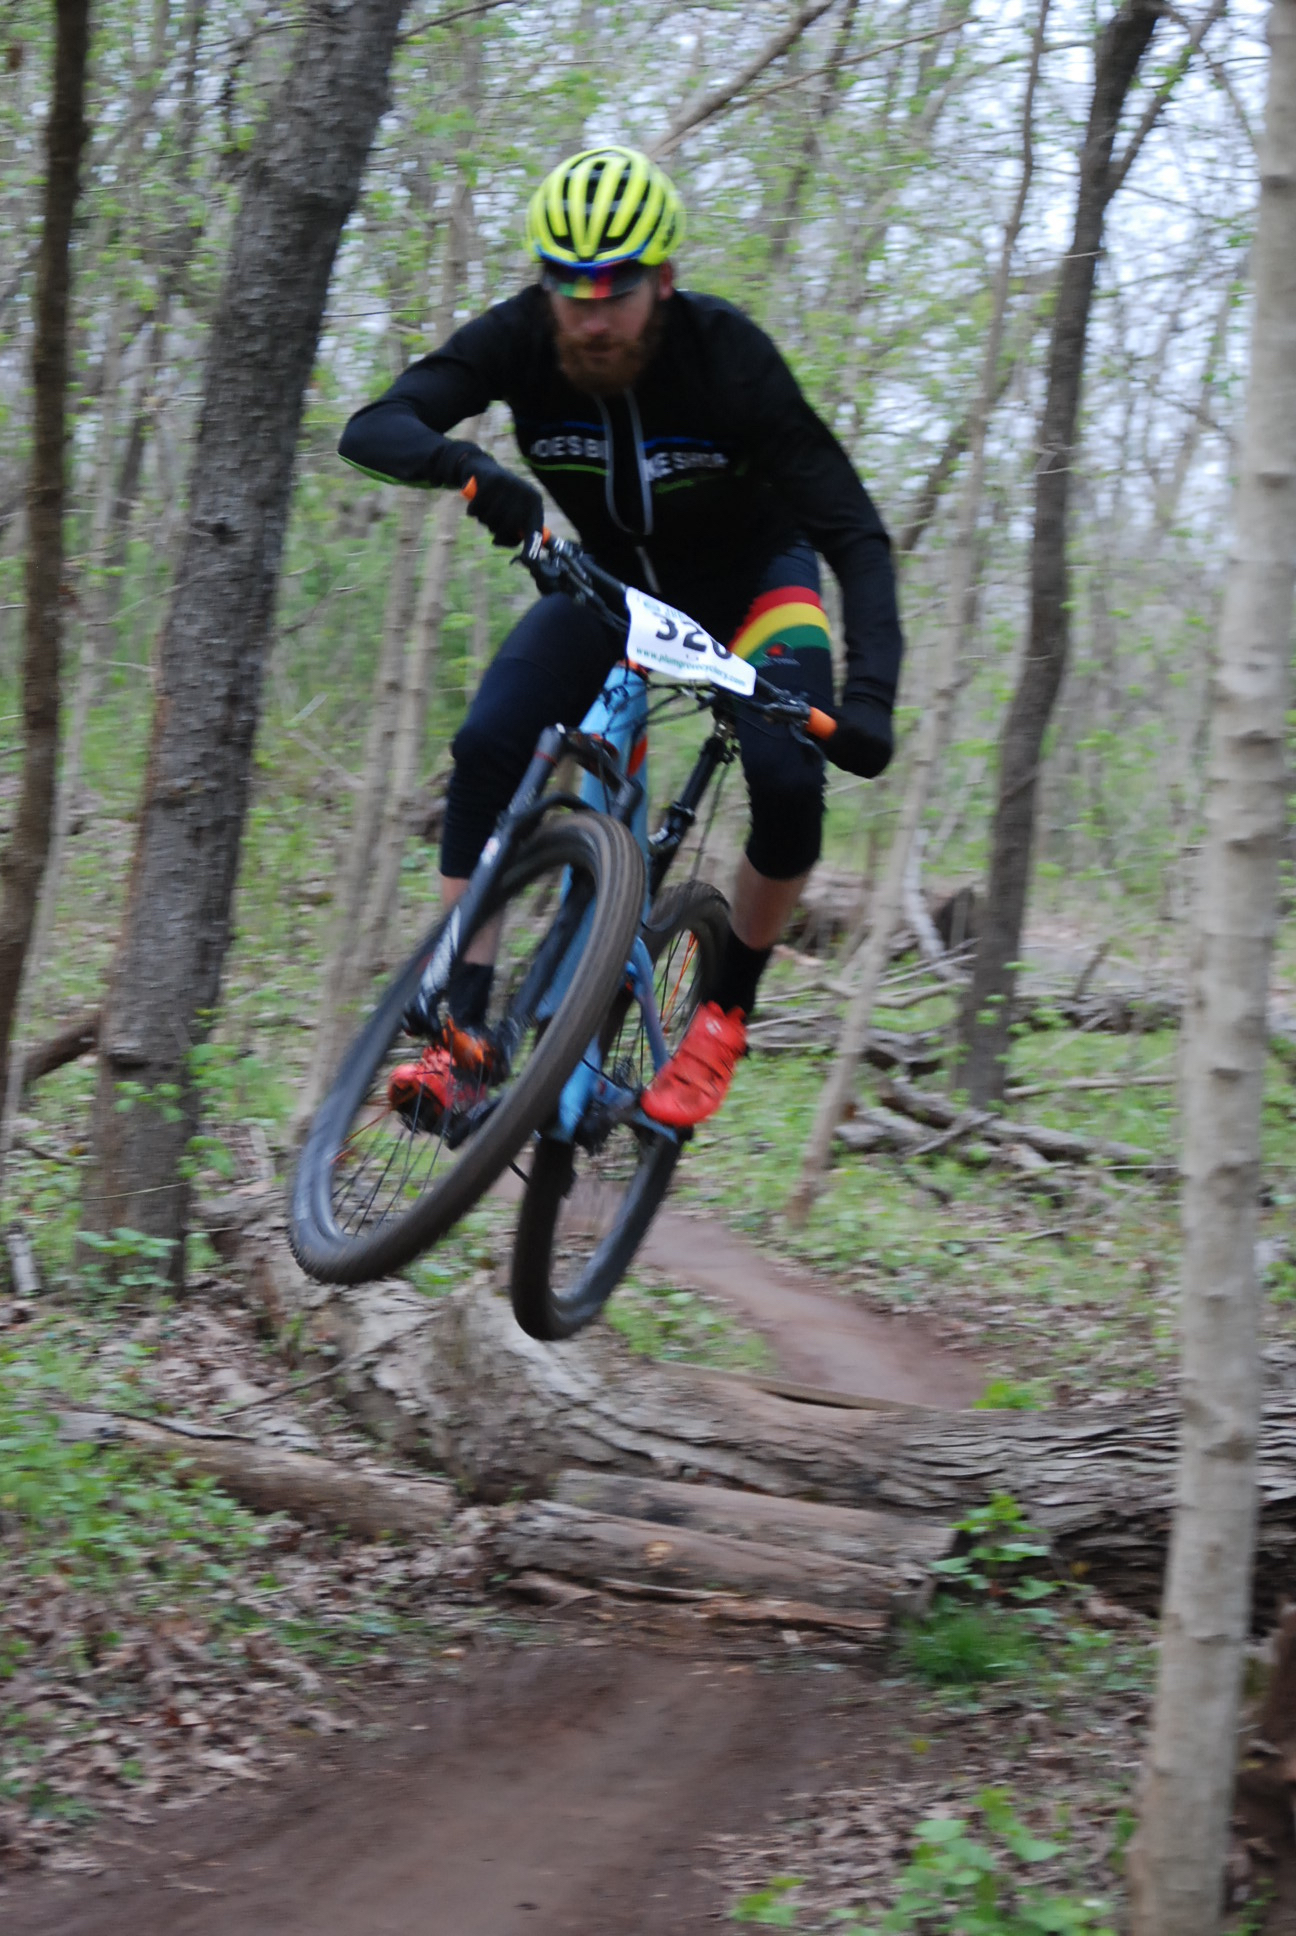 Ethan getting rad on course